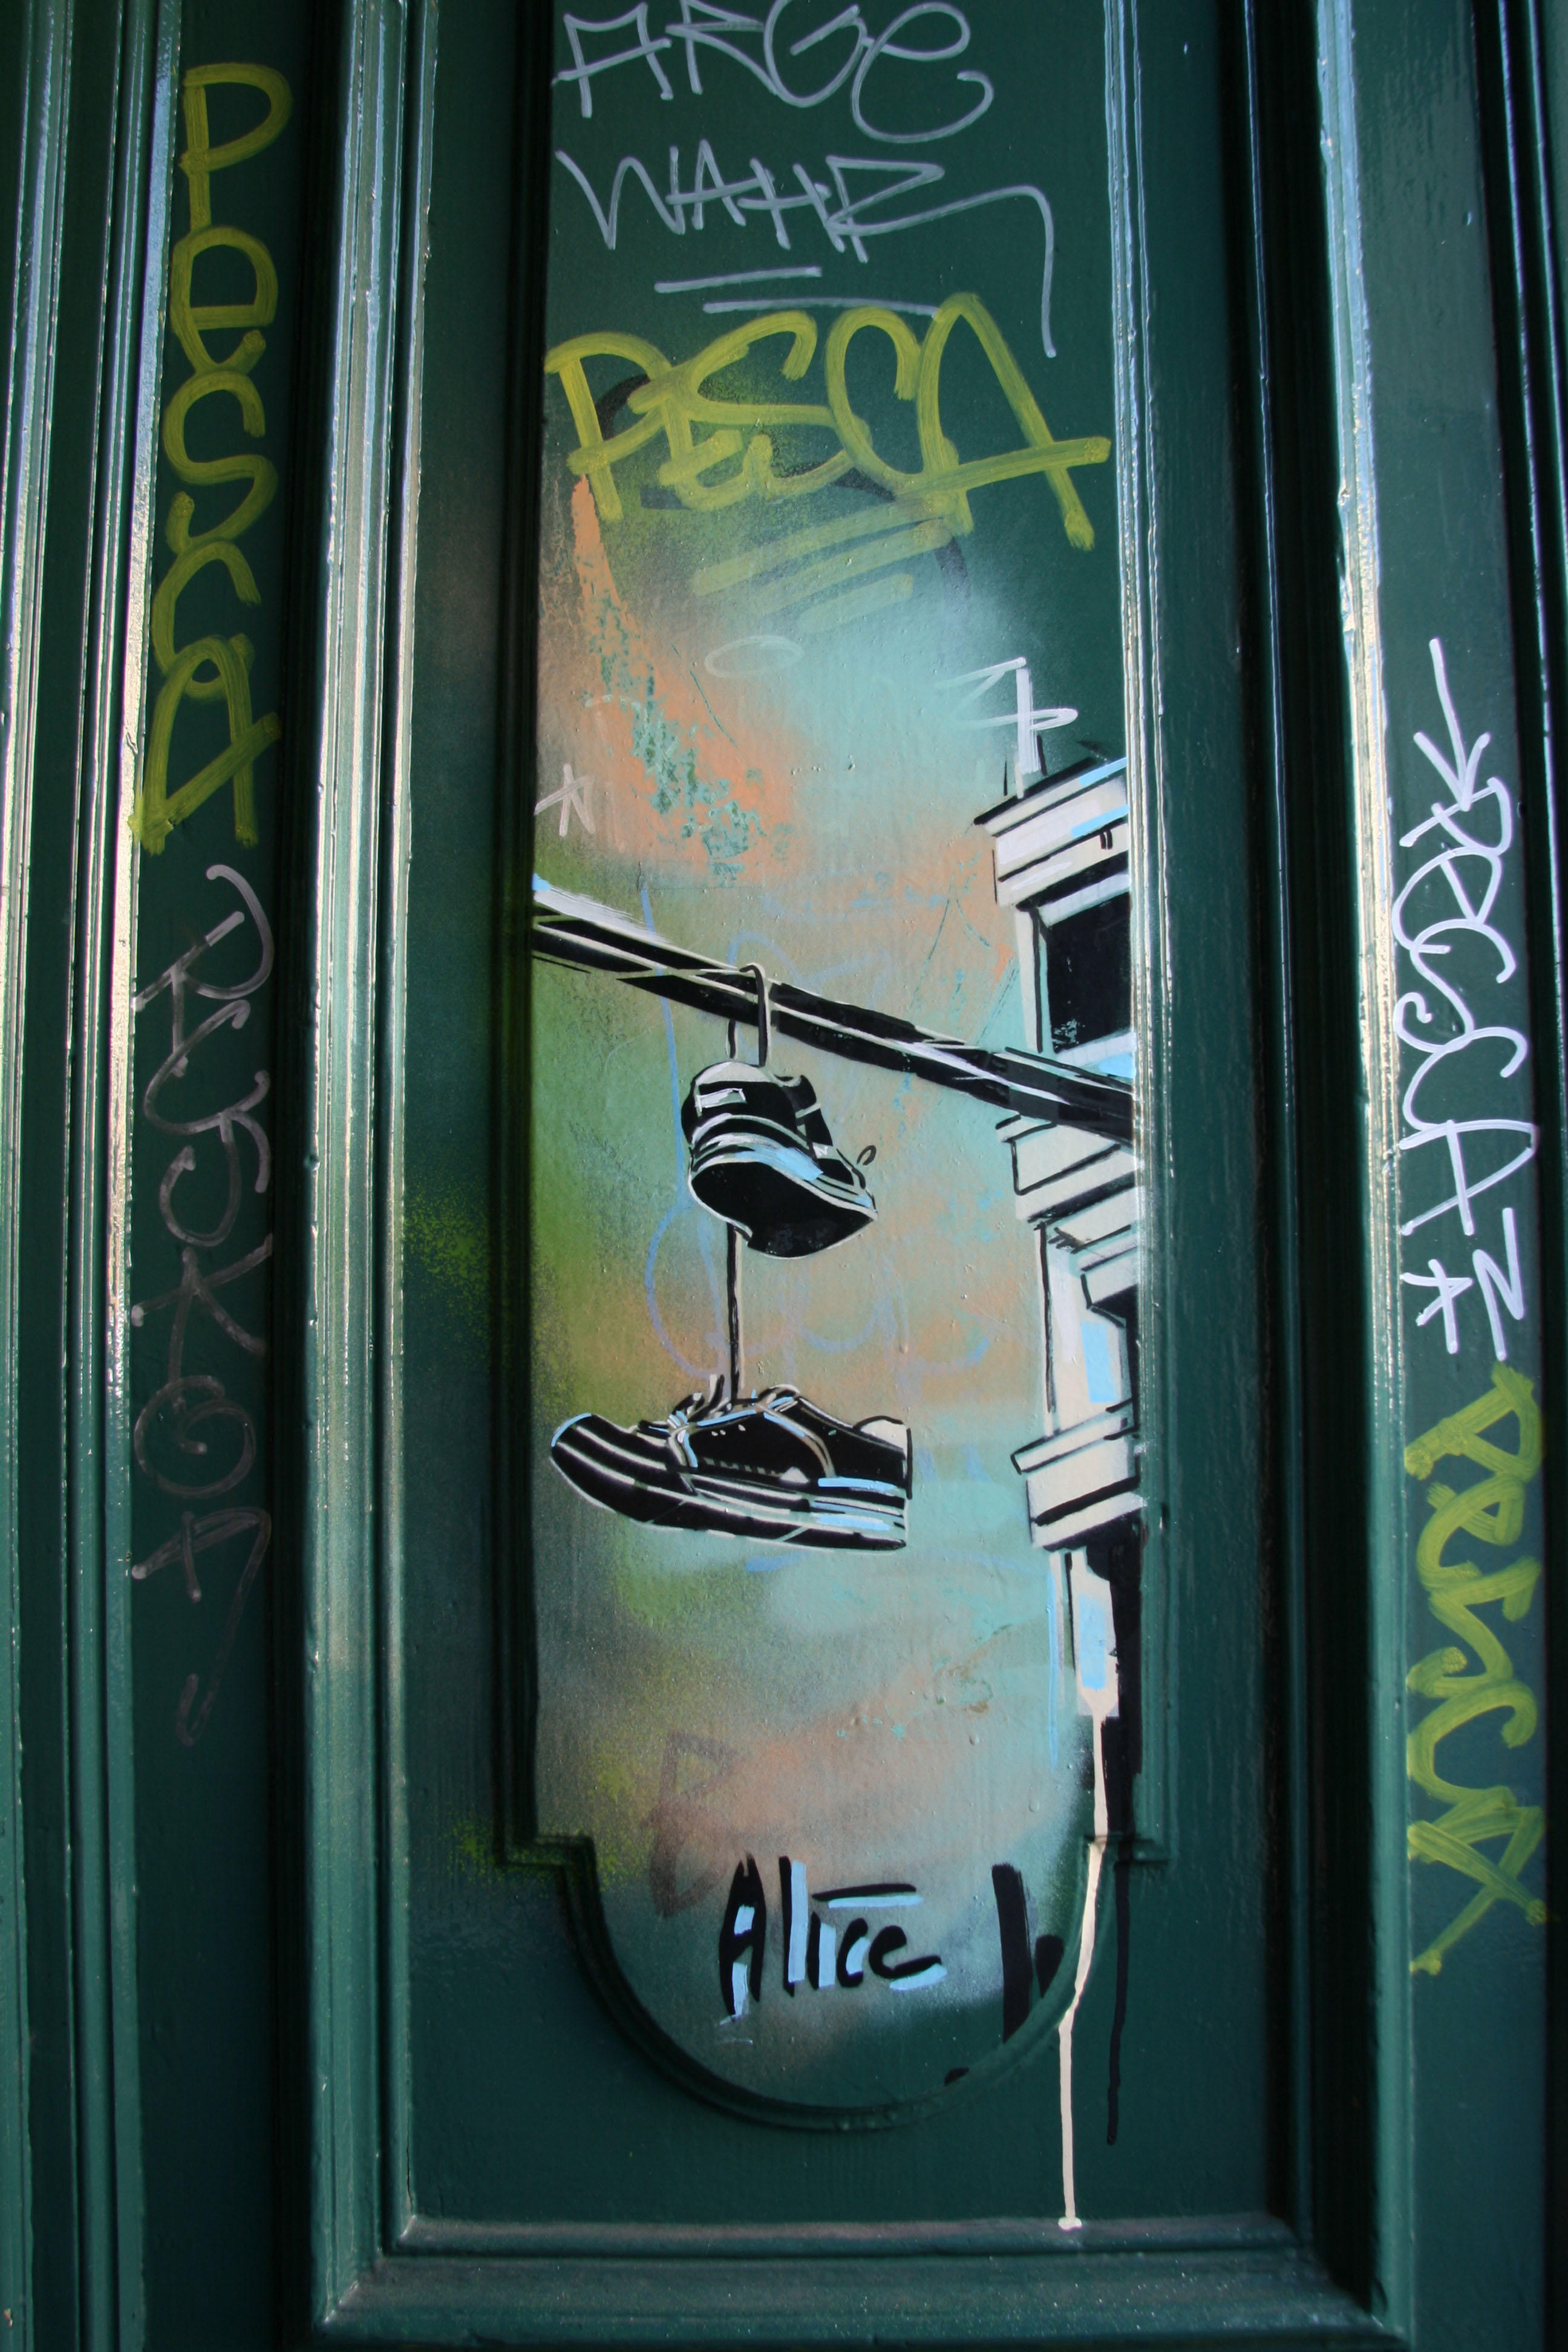 Trainers on a telephone line: Street Art by AliCé (Alice Pasquini) in Berlin